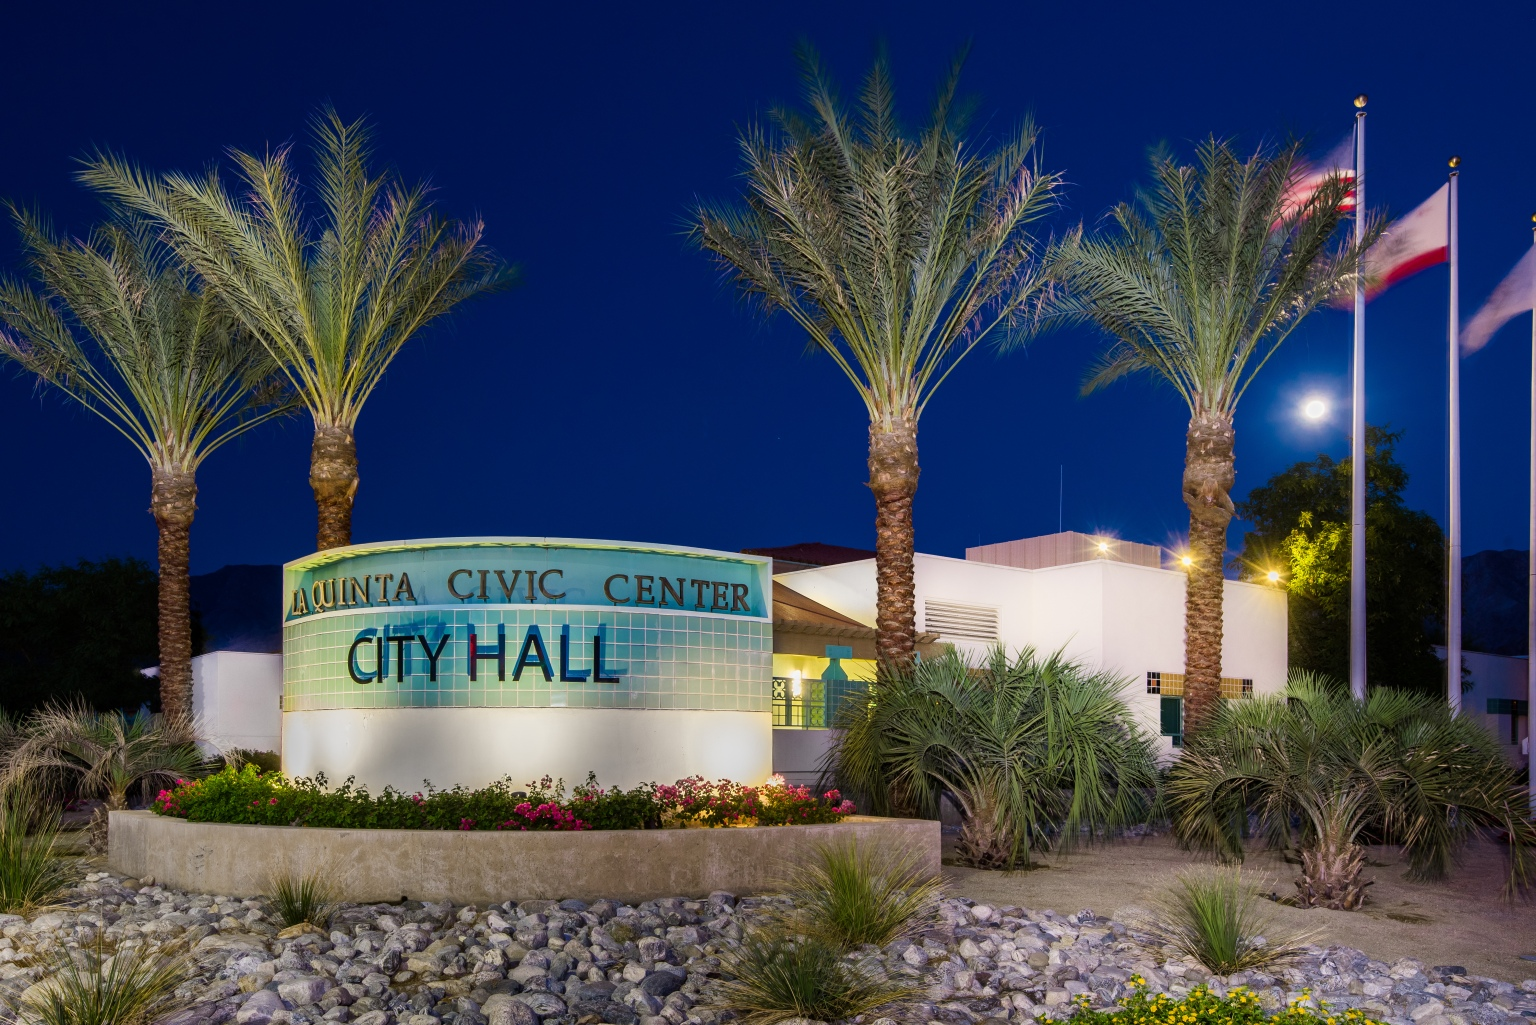 Ban On New STVR's? The City Of La Quinta Will Soon Decide